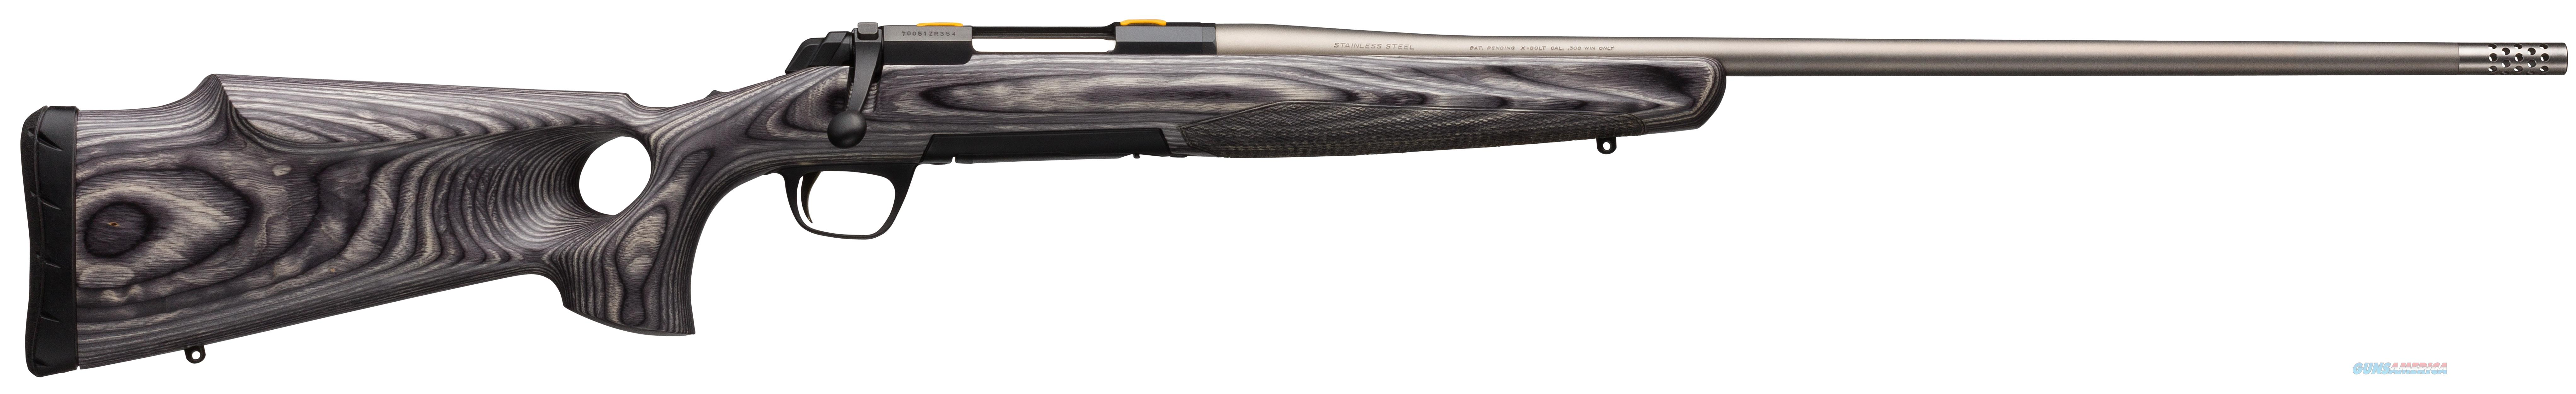 "Browning X-Bolt Eclipse Hunter .243 Winchester 24"" 035439211   Guns > Rifles > Browning Rifles > Bolt Action > Hunting > Stainless"